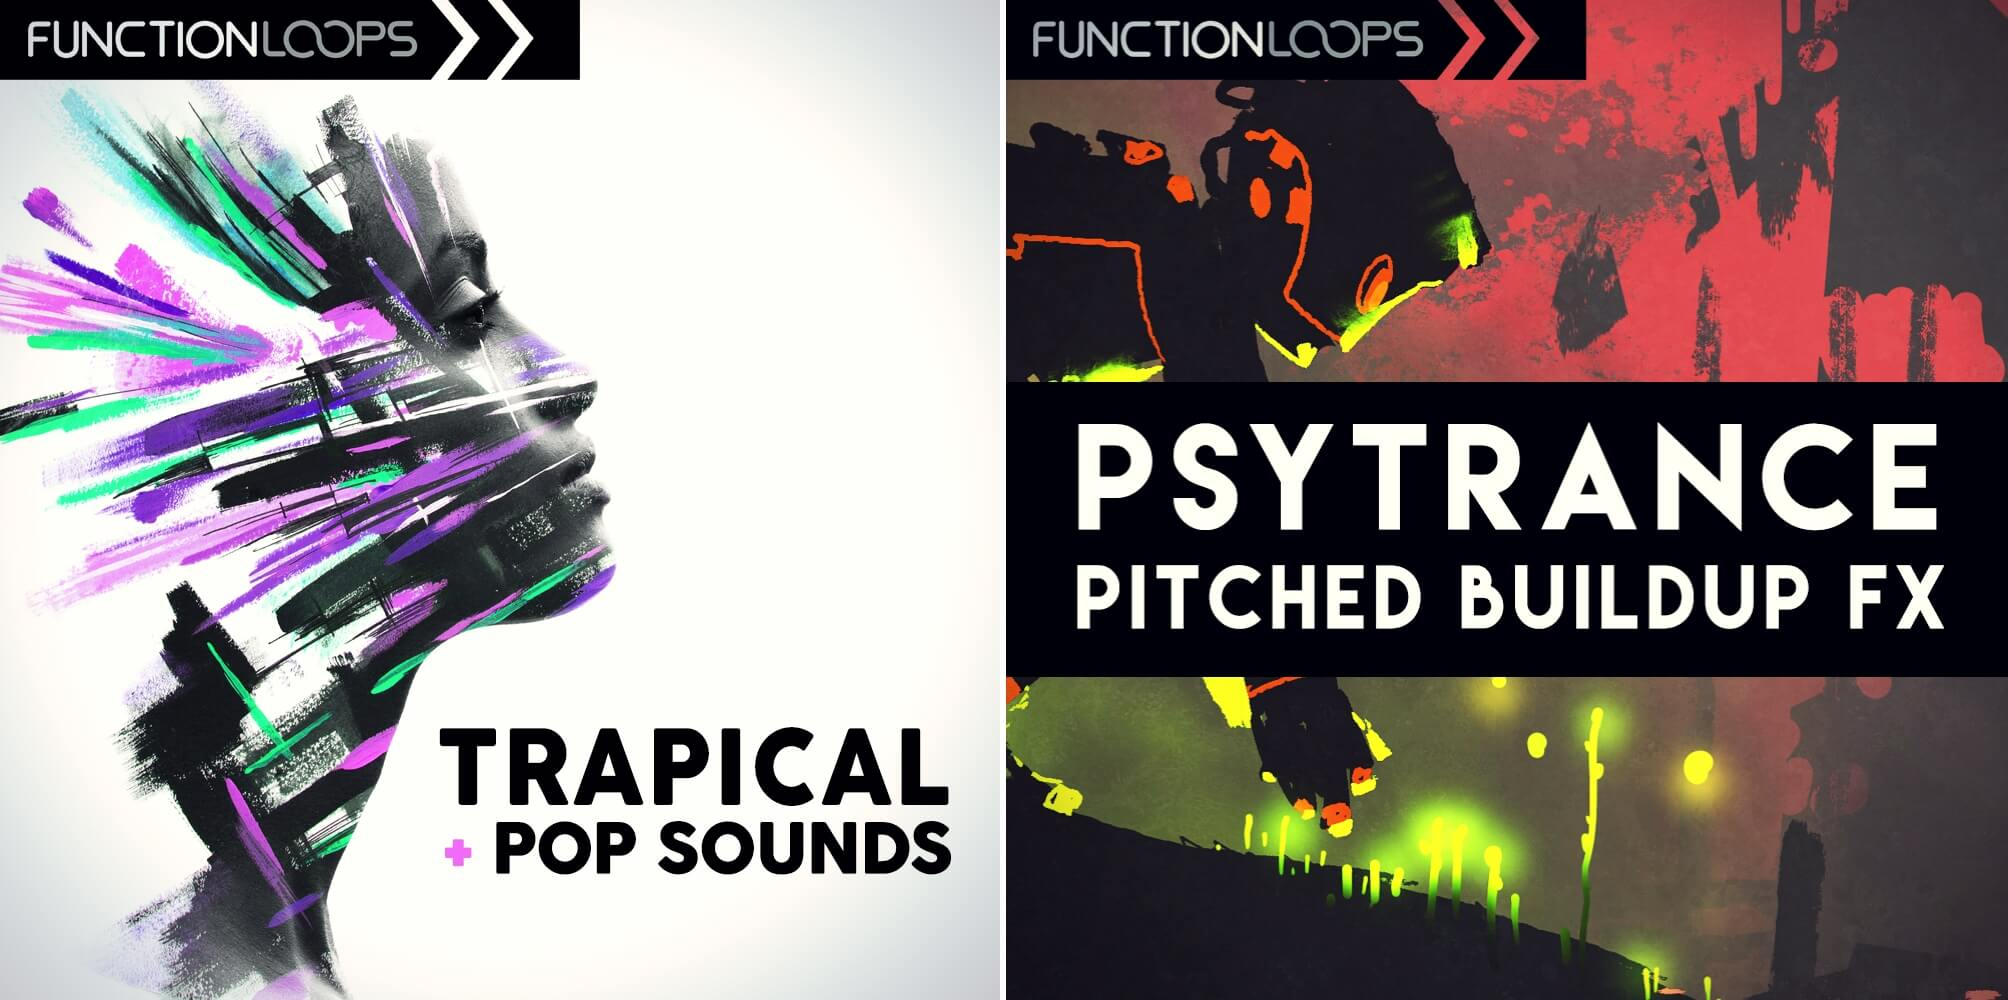 Sound FX for Sylenth and Hardstyle + Trapical & Pop Sounds